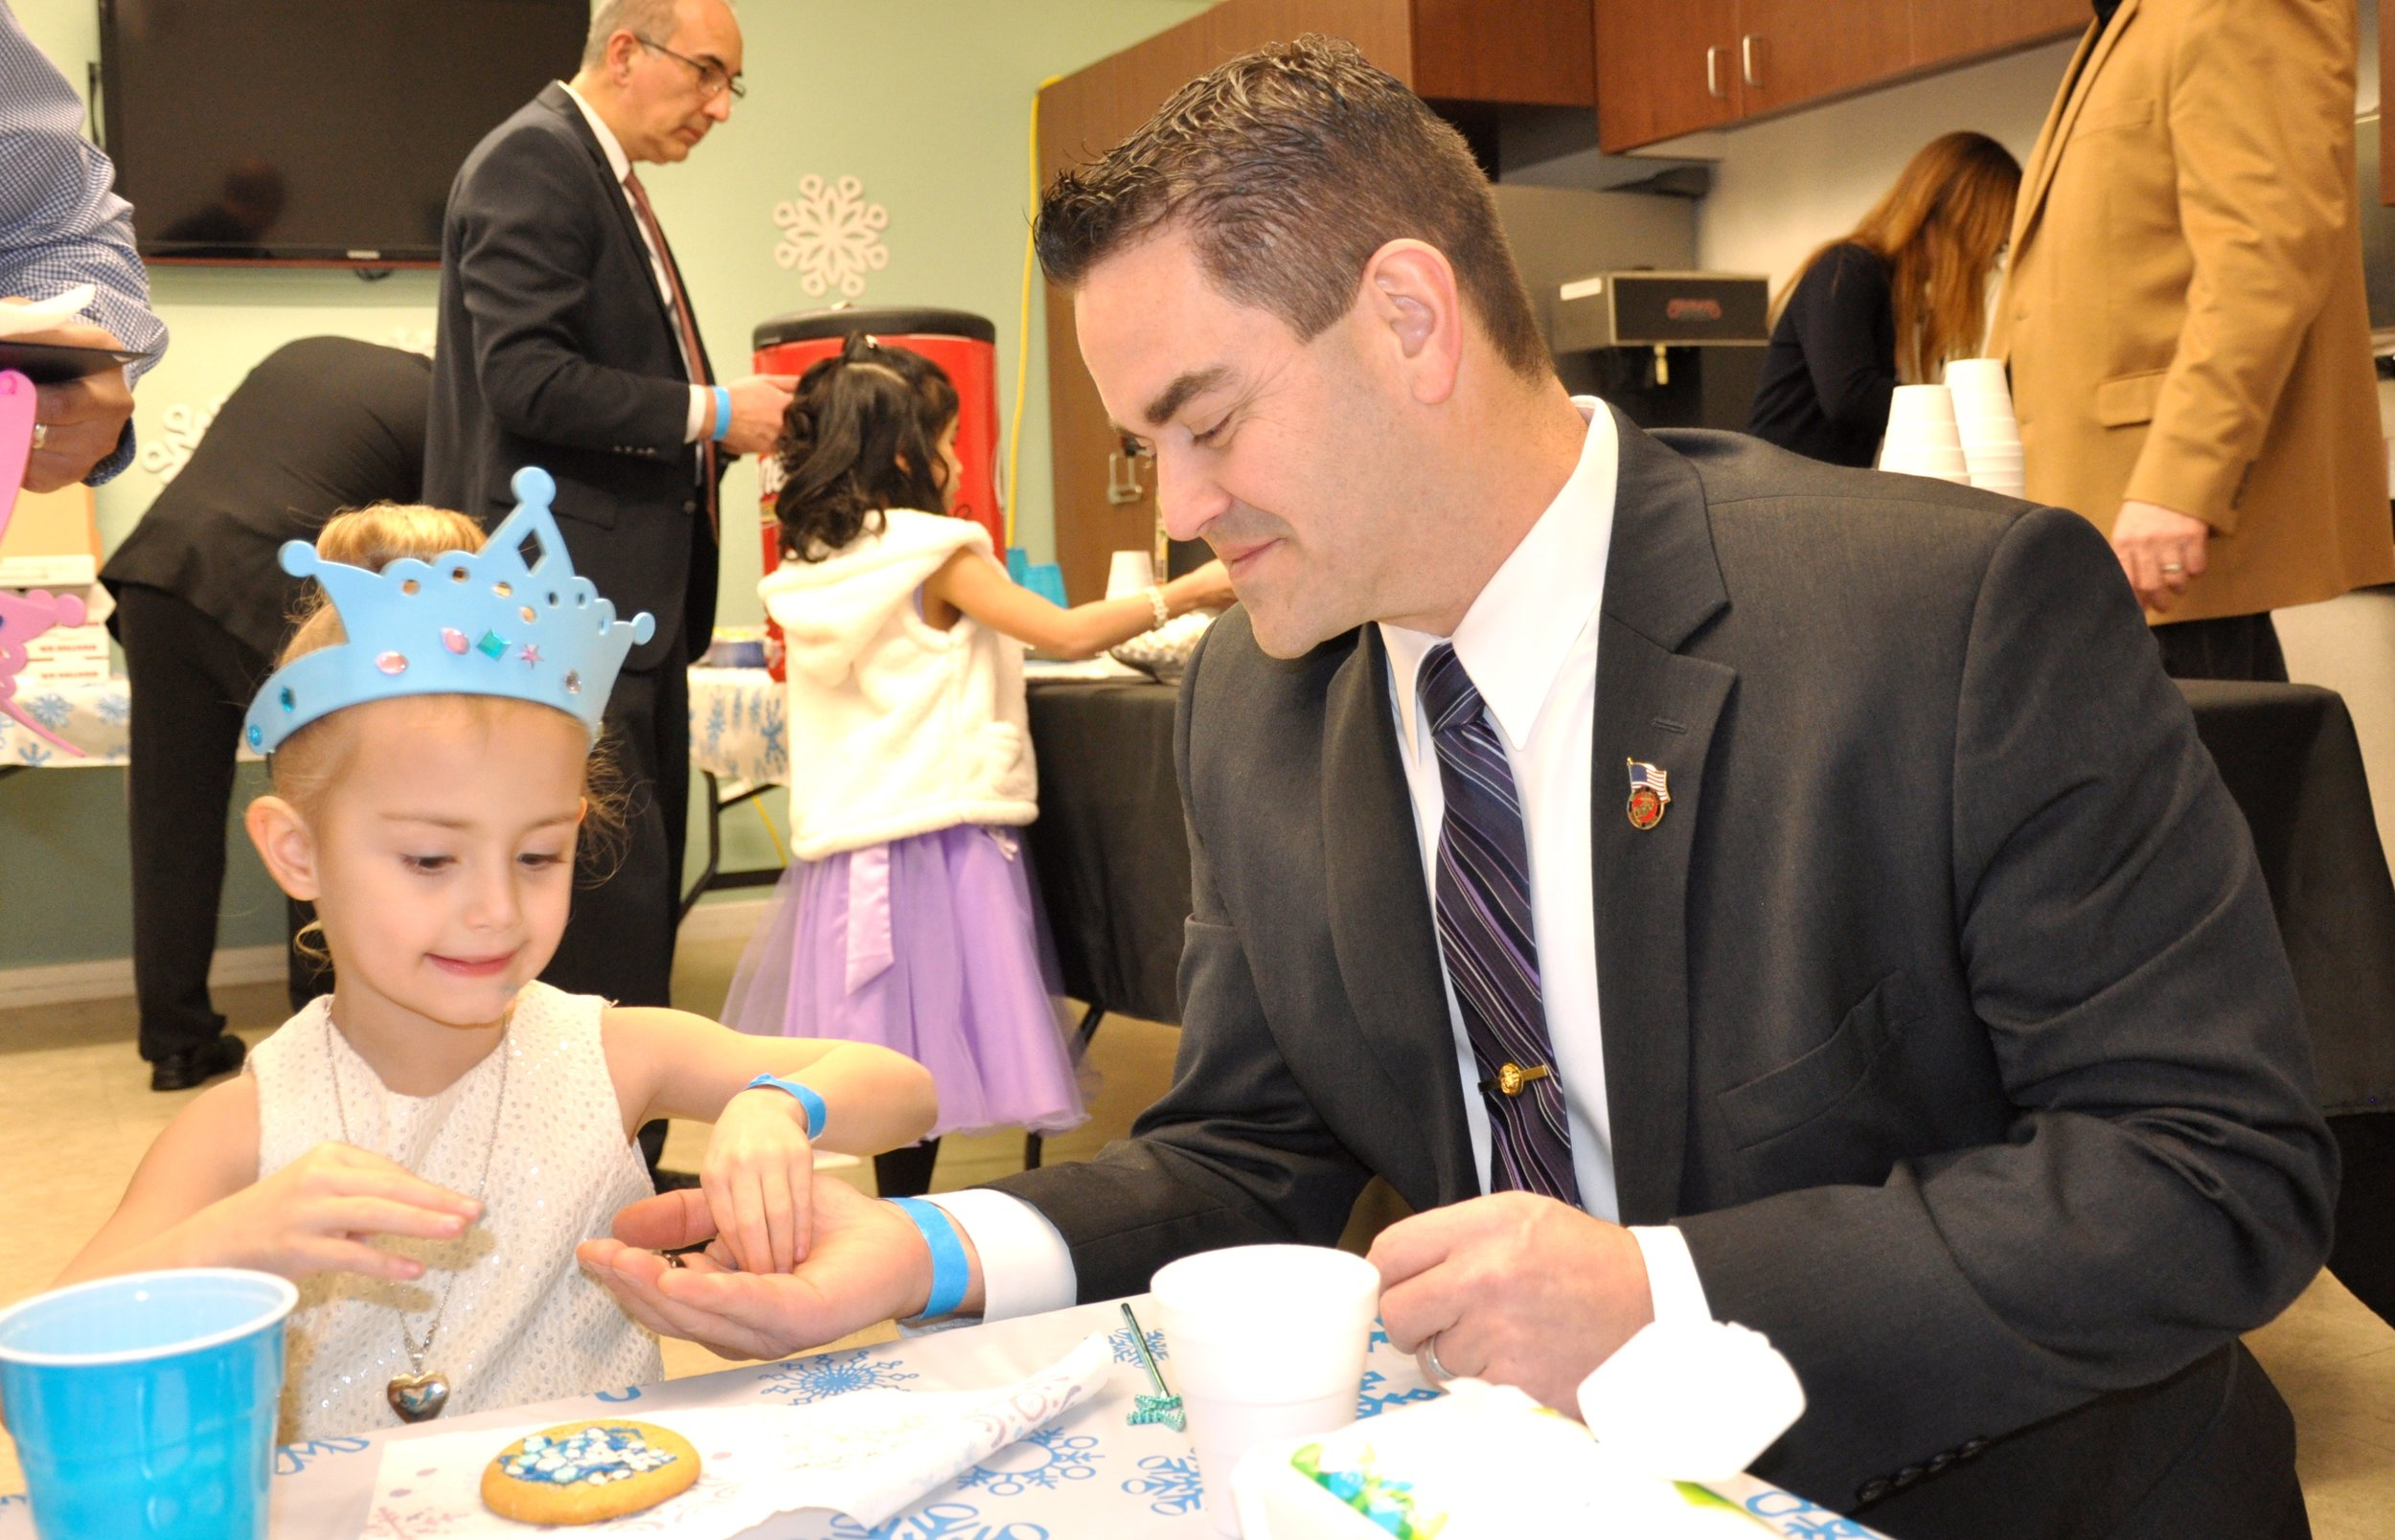 Avery decorates cookies with her dad.